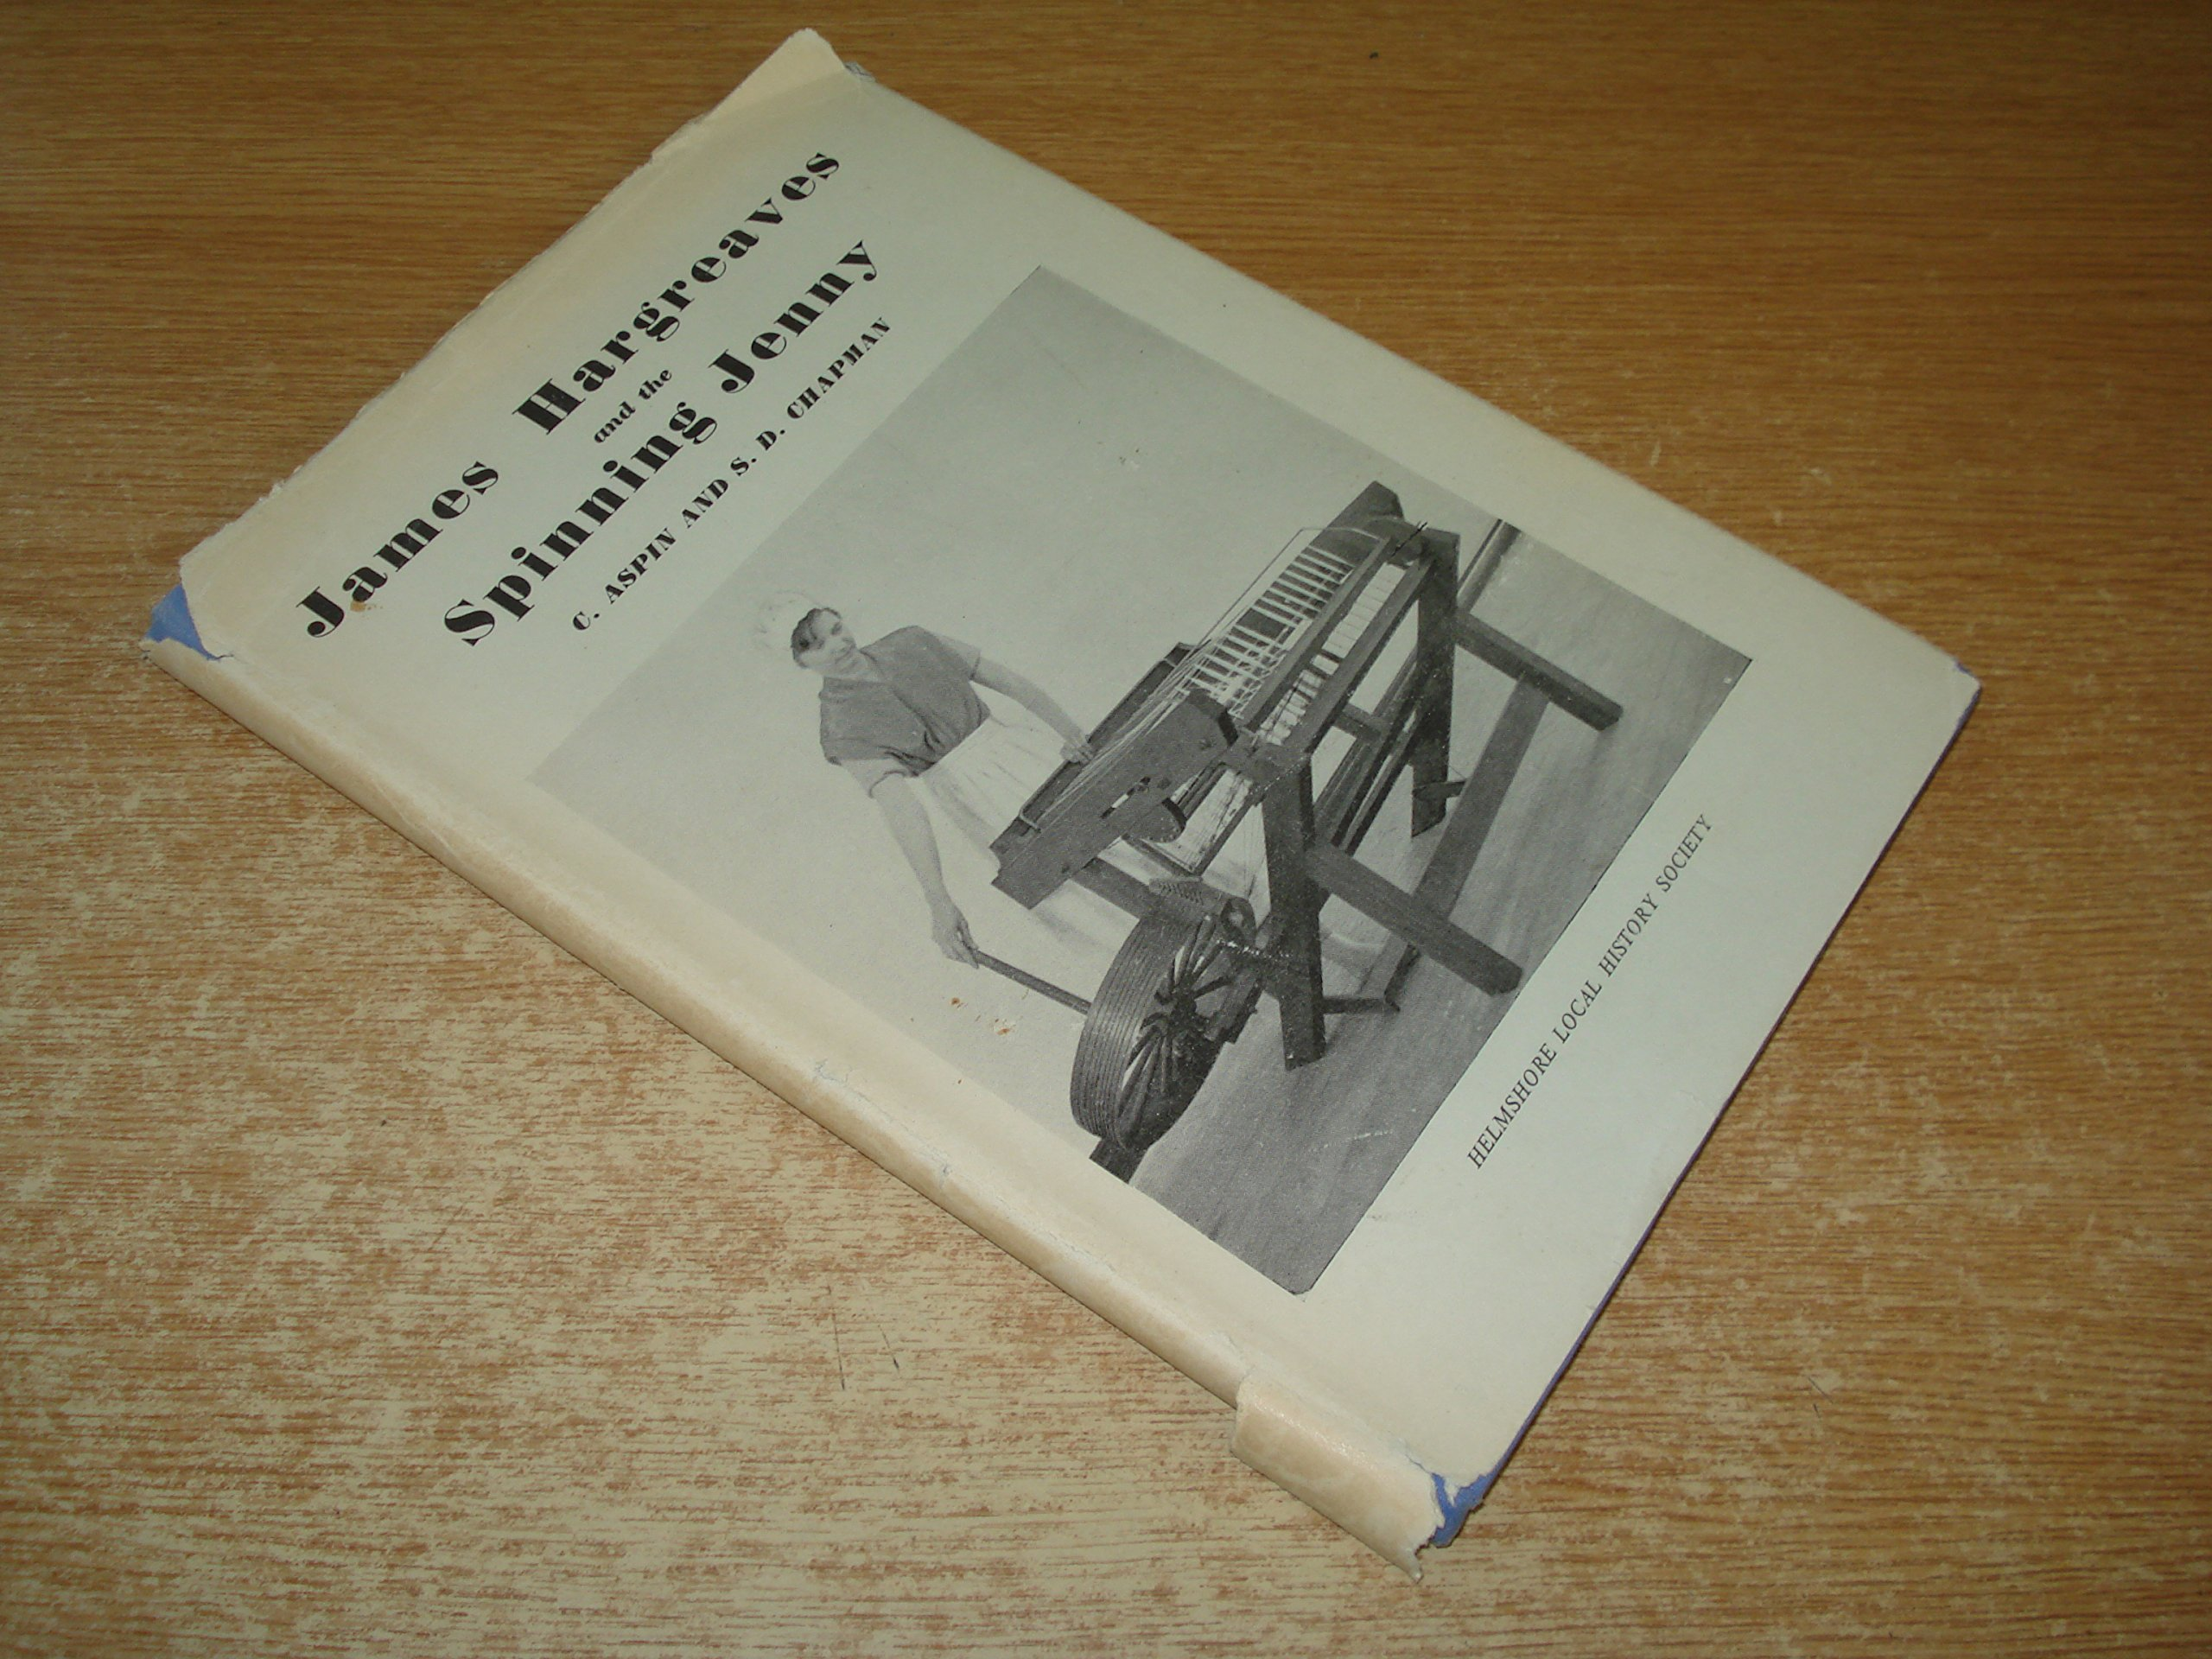 James Hargreaves and the Spinning Jenny: Amazon.es: Aspin, Chris: Libros en idiomas extranjeros